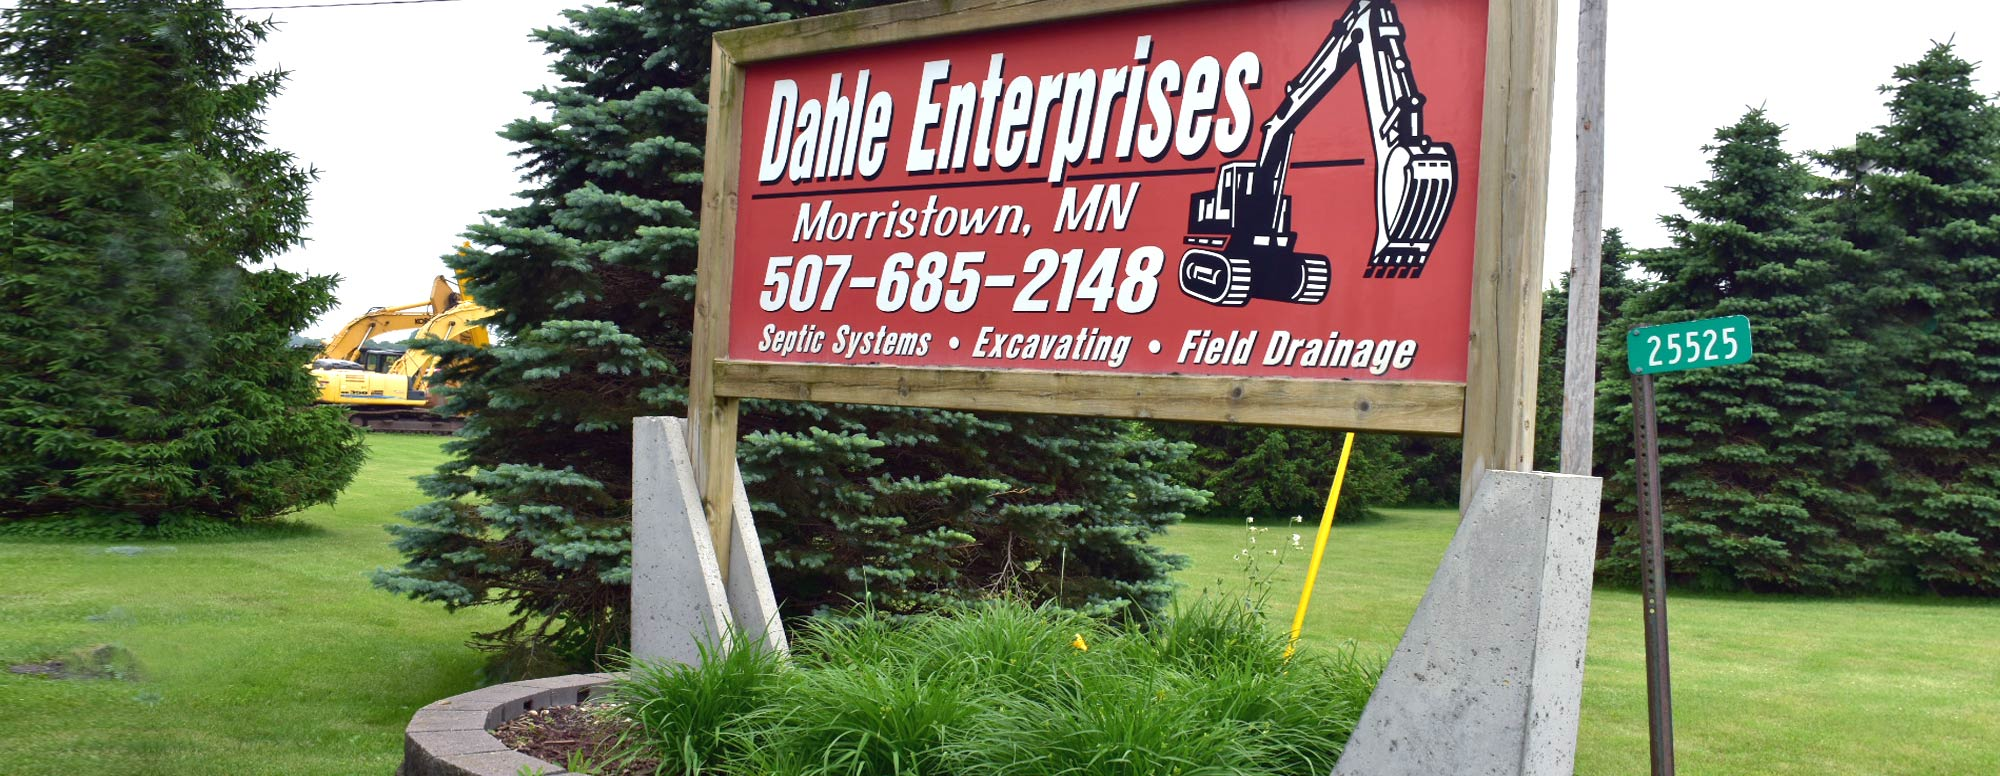 Dahle Enterprises' business welcome sign outside their facility location in Morristown, MN